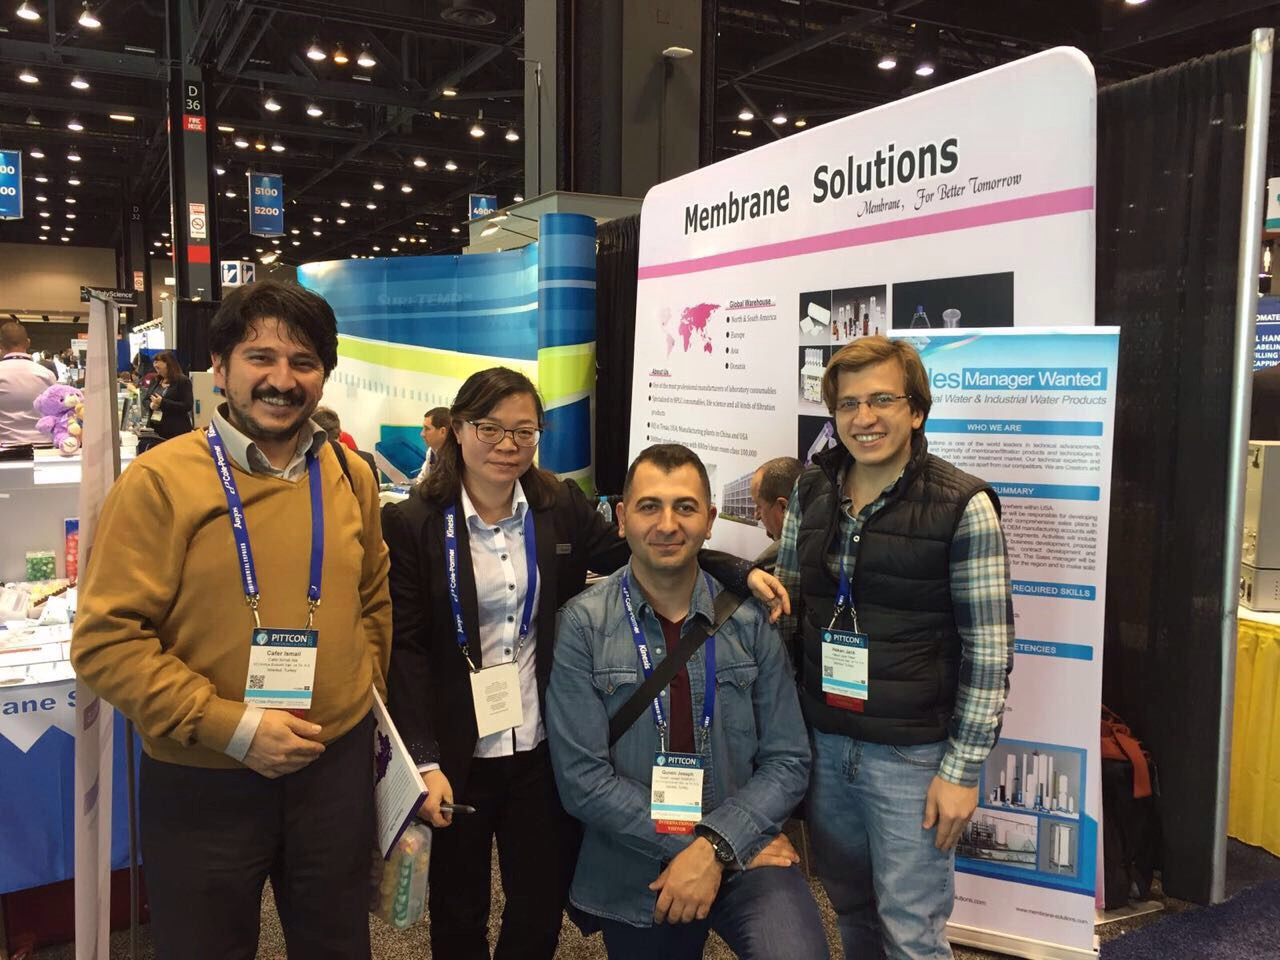 Membrane Solution - SCI PITTCON 2017 Meeting